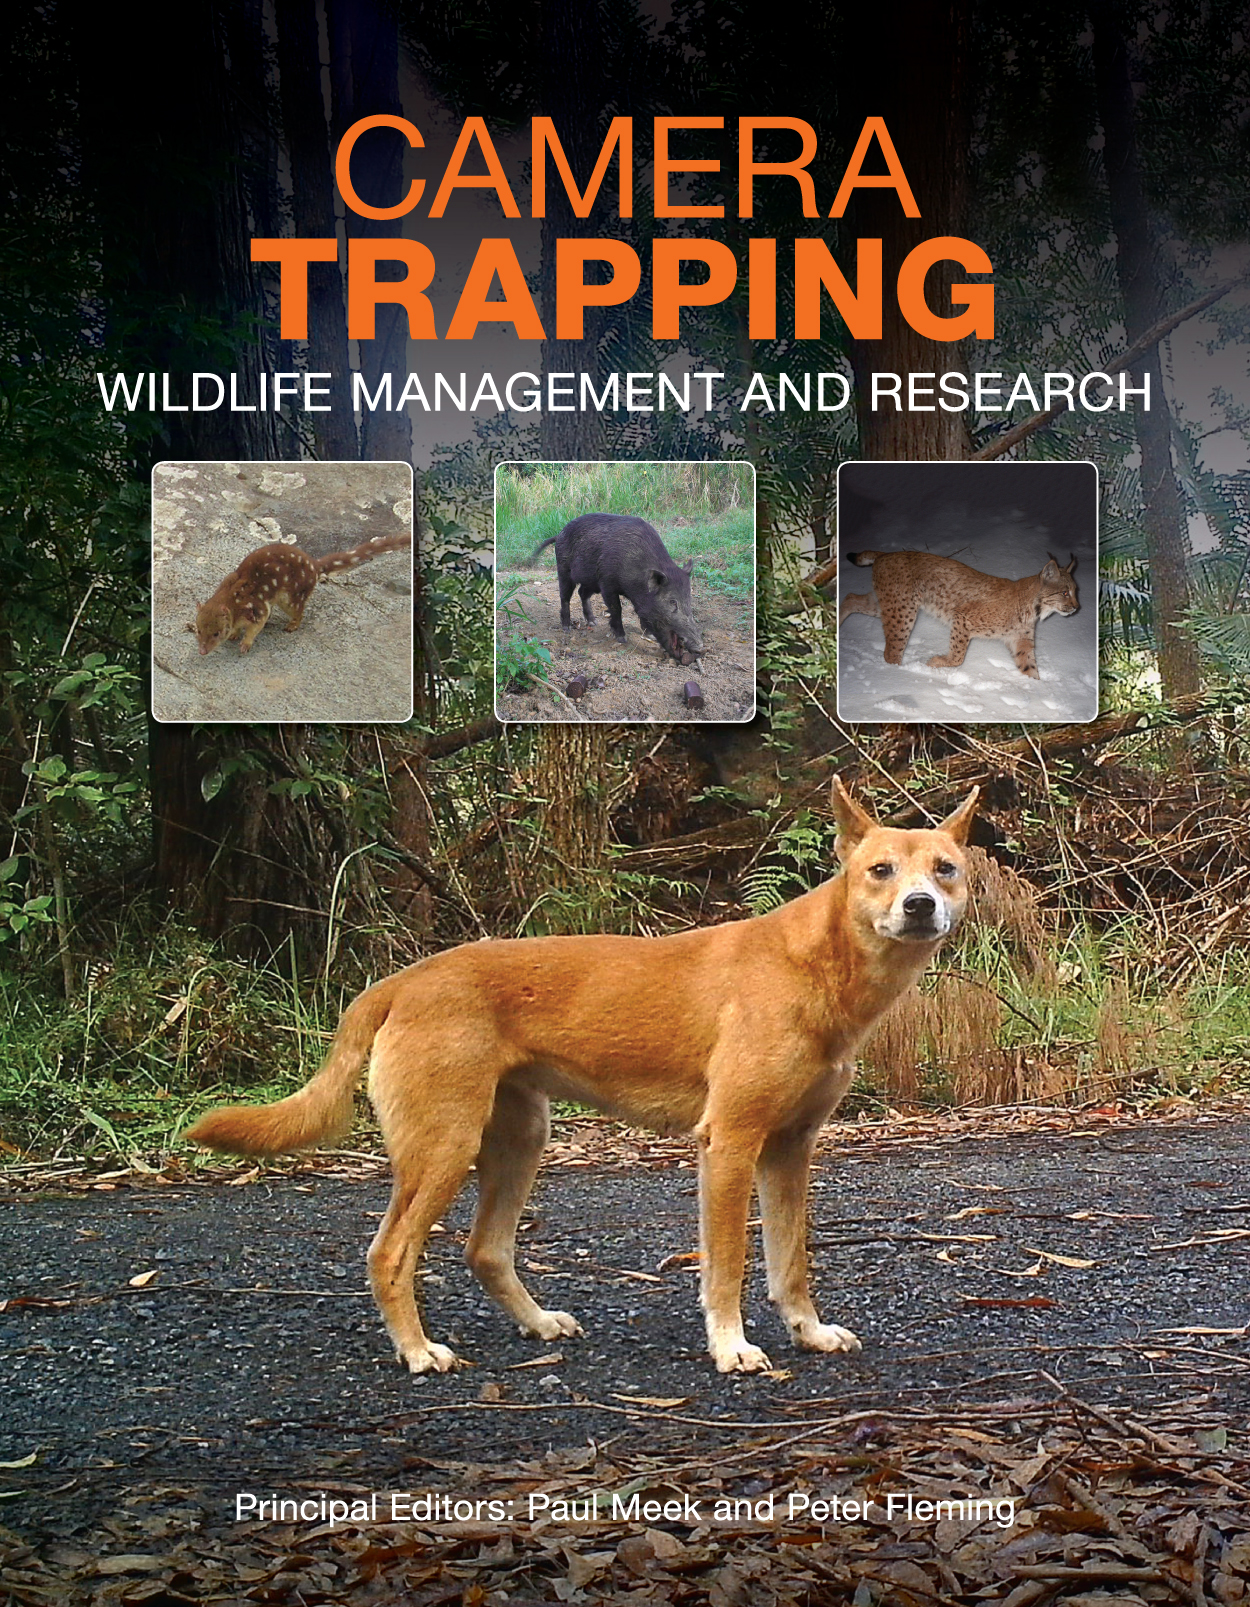 The cover has four photographs of animals captured by camera trapping: a b